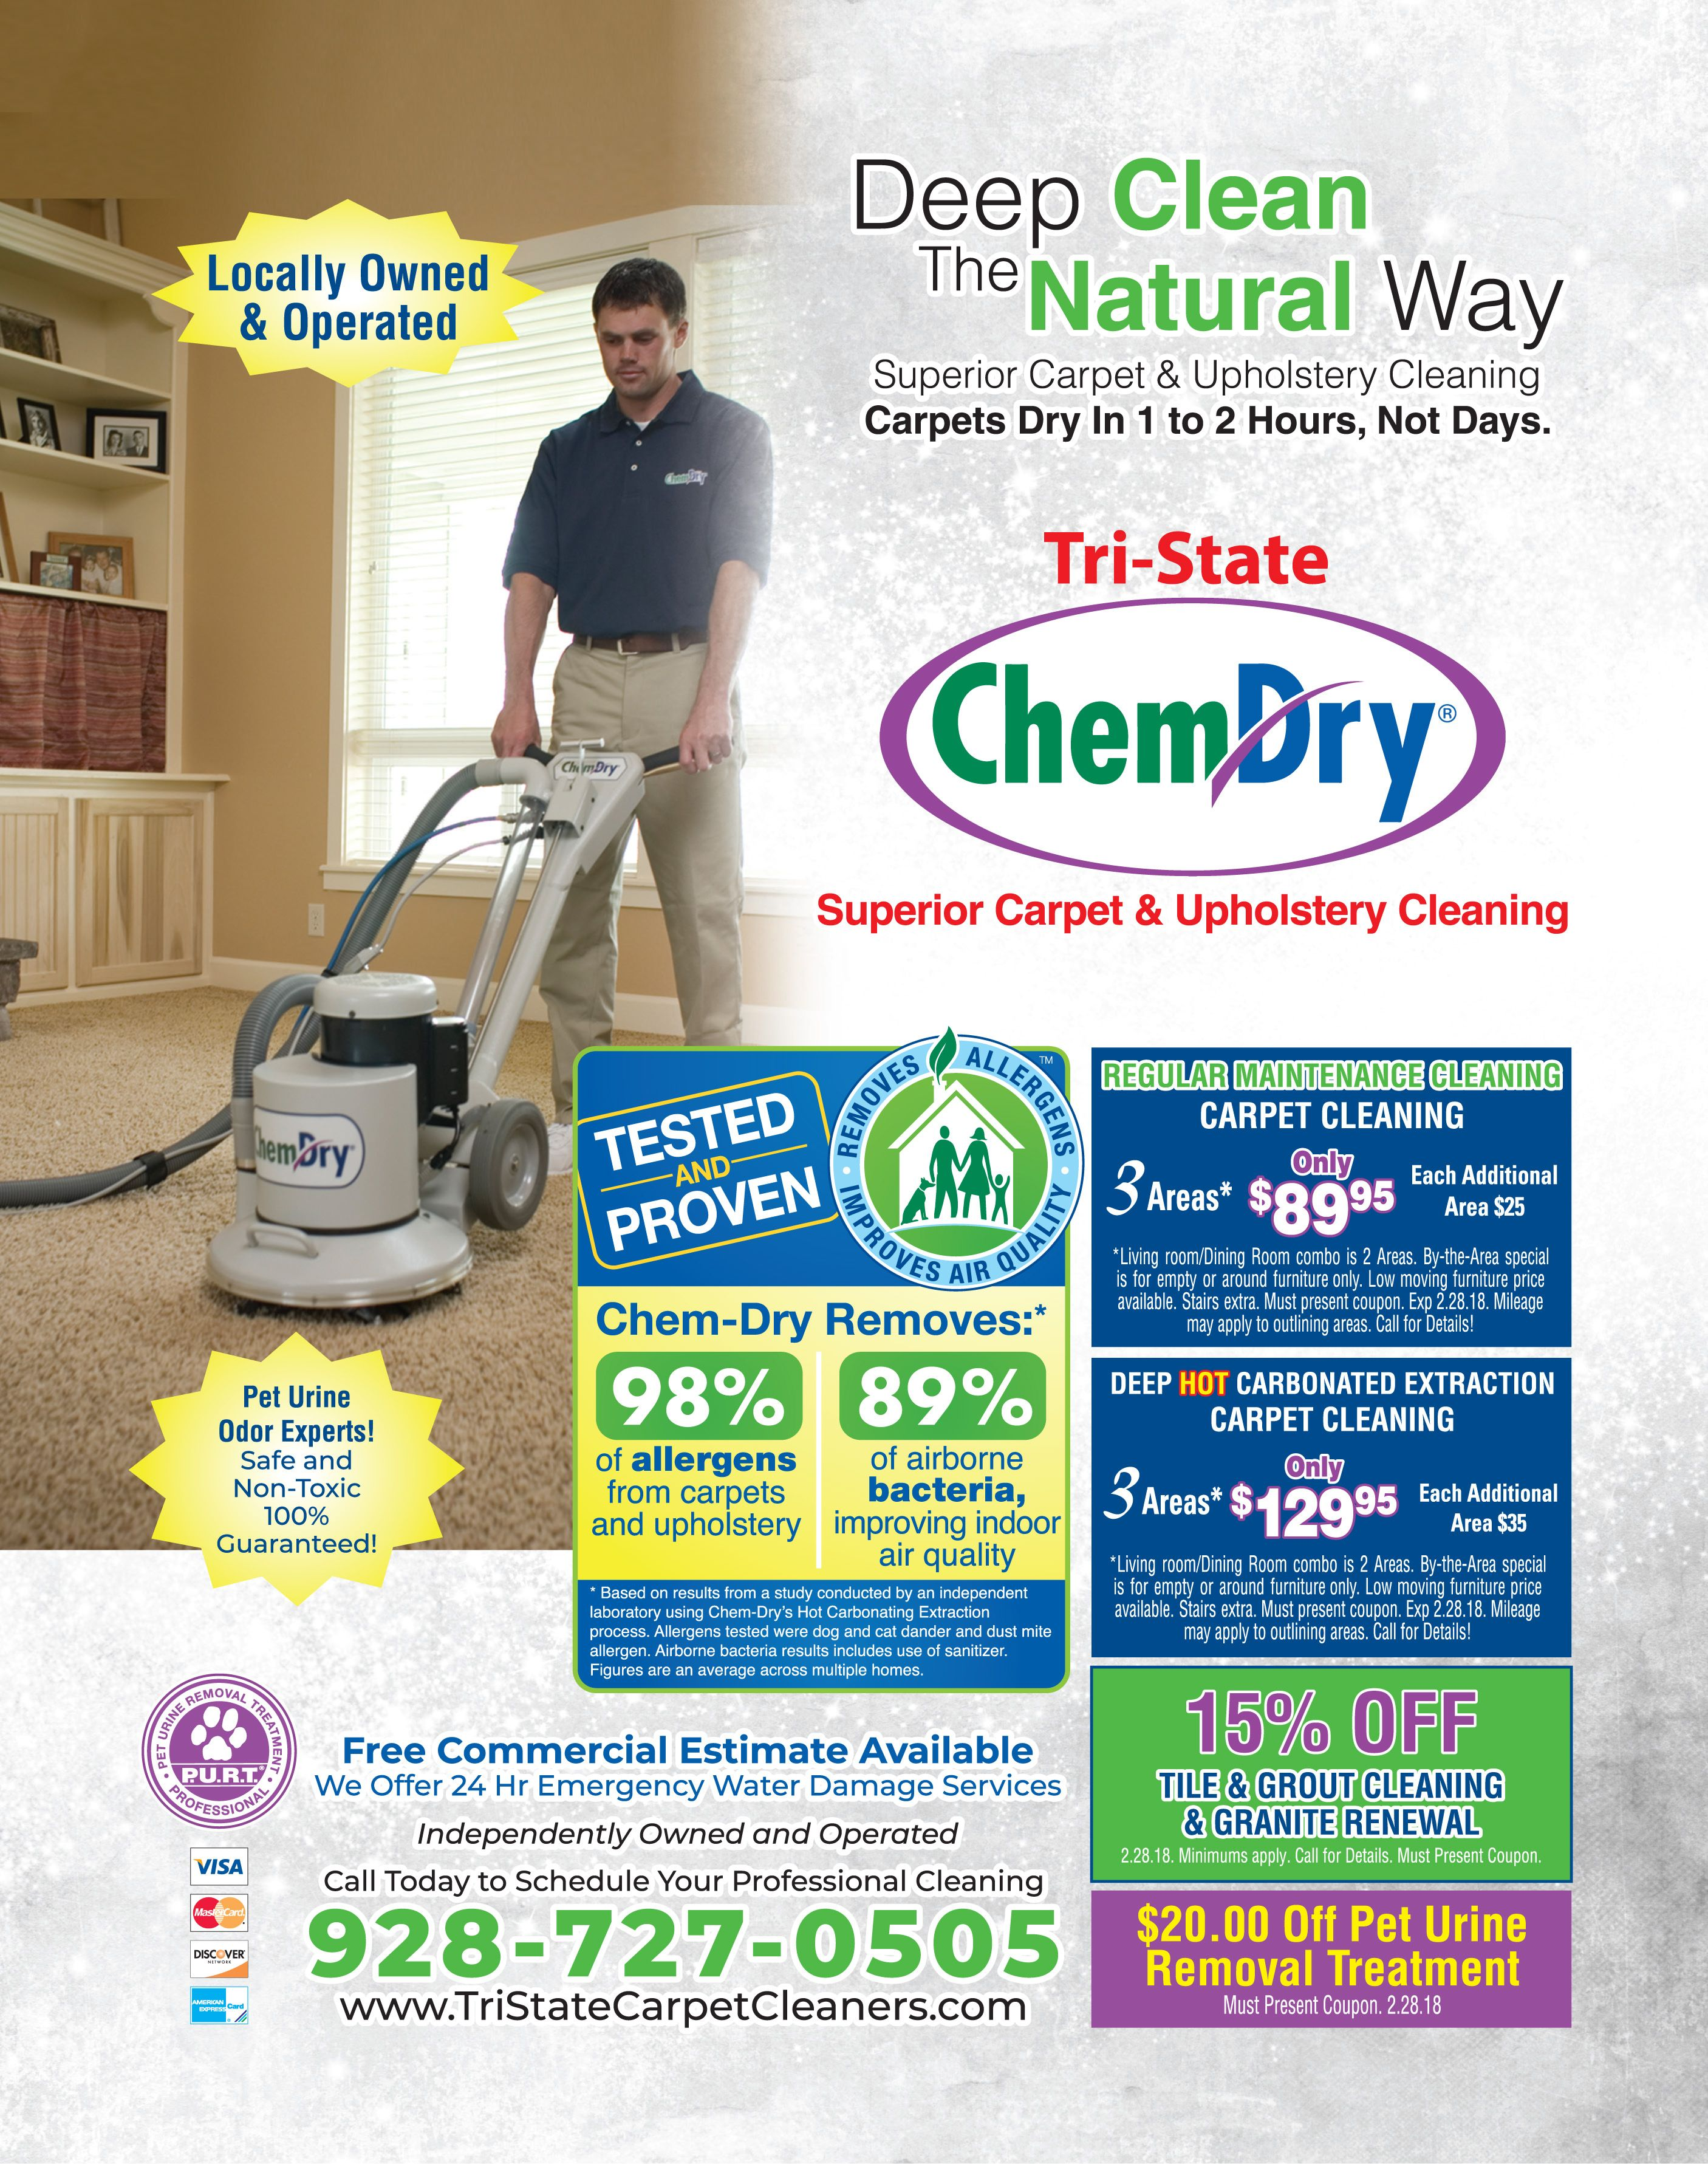 Hot Carbonate Your Carpets For Only 129 95 In 3 Areas Of Your Home With Tristatechemdry Adspay Homes Car How To Clean Carpet Cleaning Upholstery Chem Dry